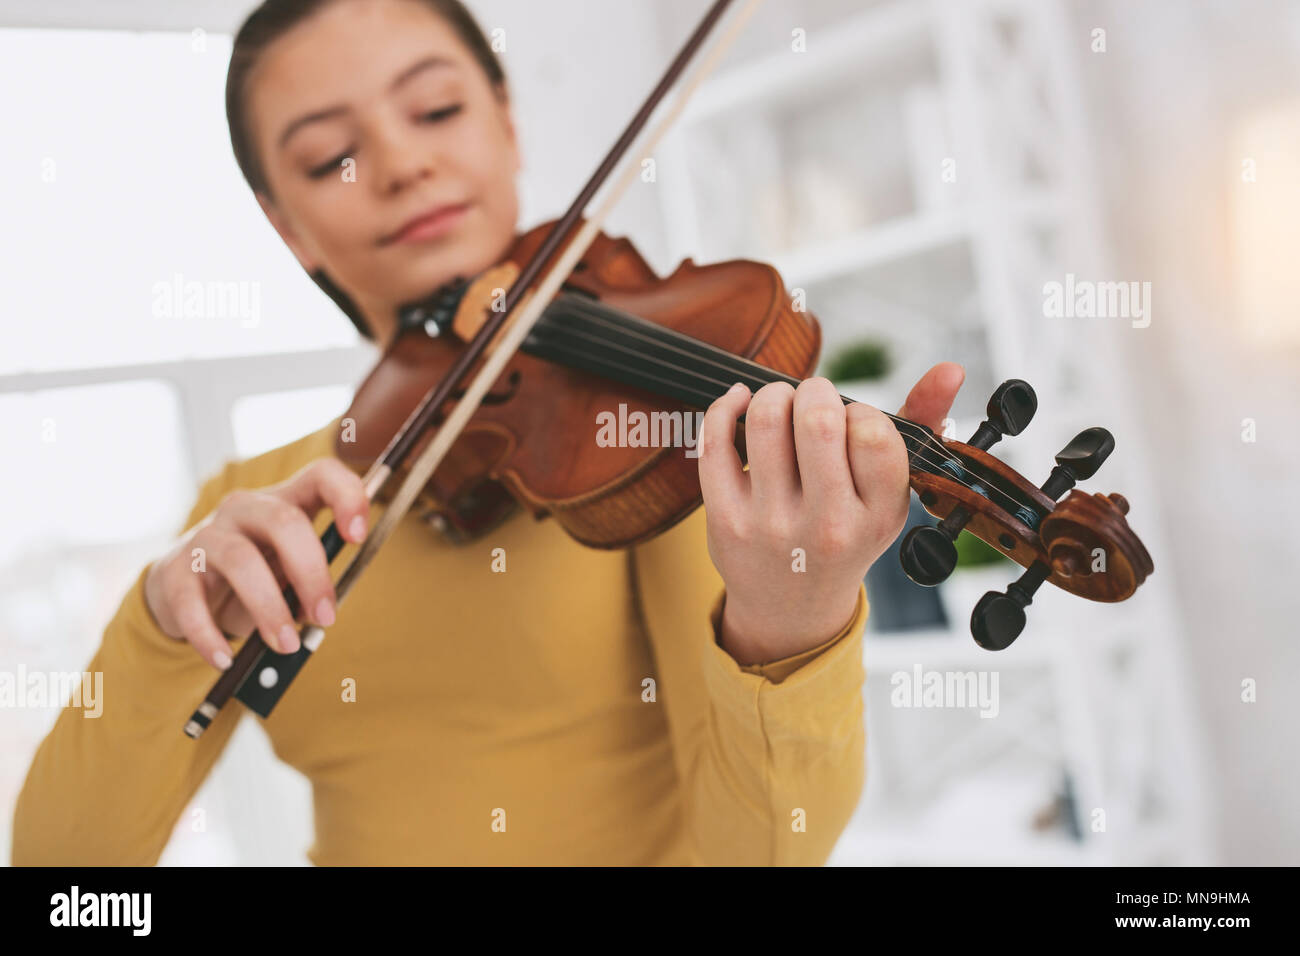 Focused photo on female hands that holding violin - Stock Image